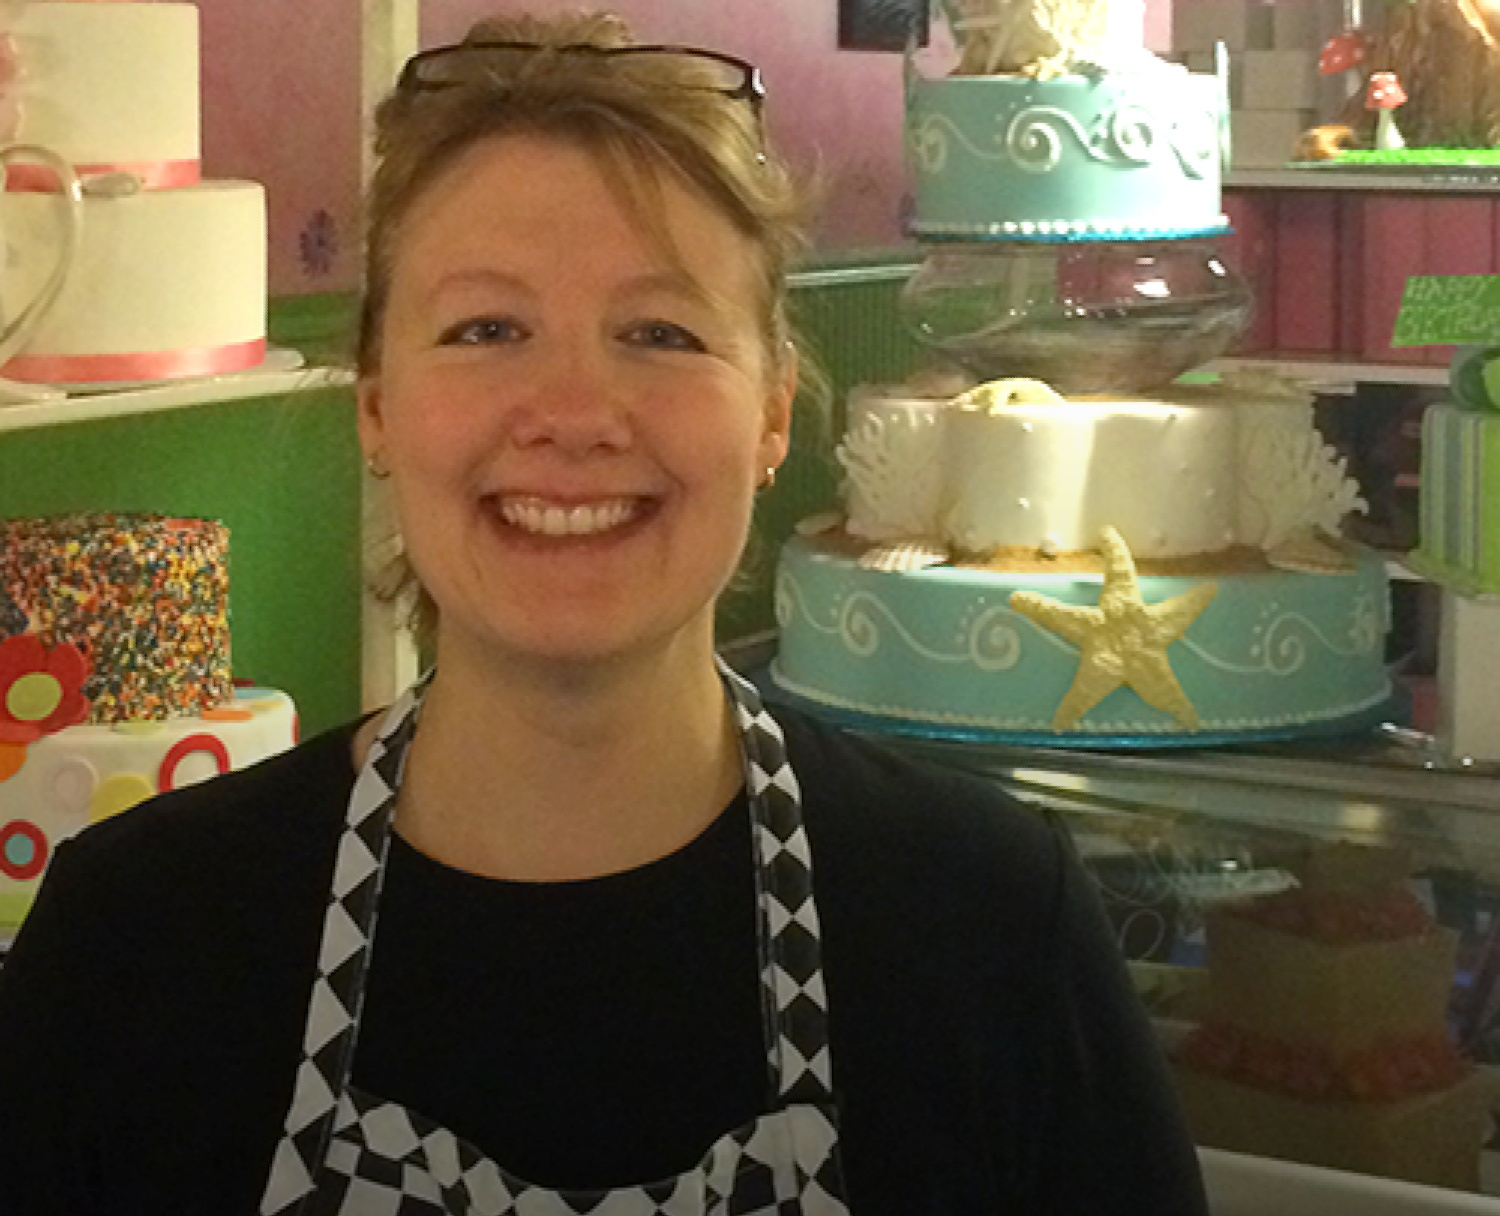 After Talking To Jesus For Two Weeks, Bakery Owner Won't Make Cake For Lesbians' Wedding